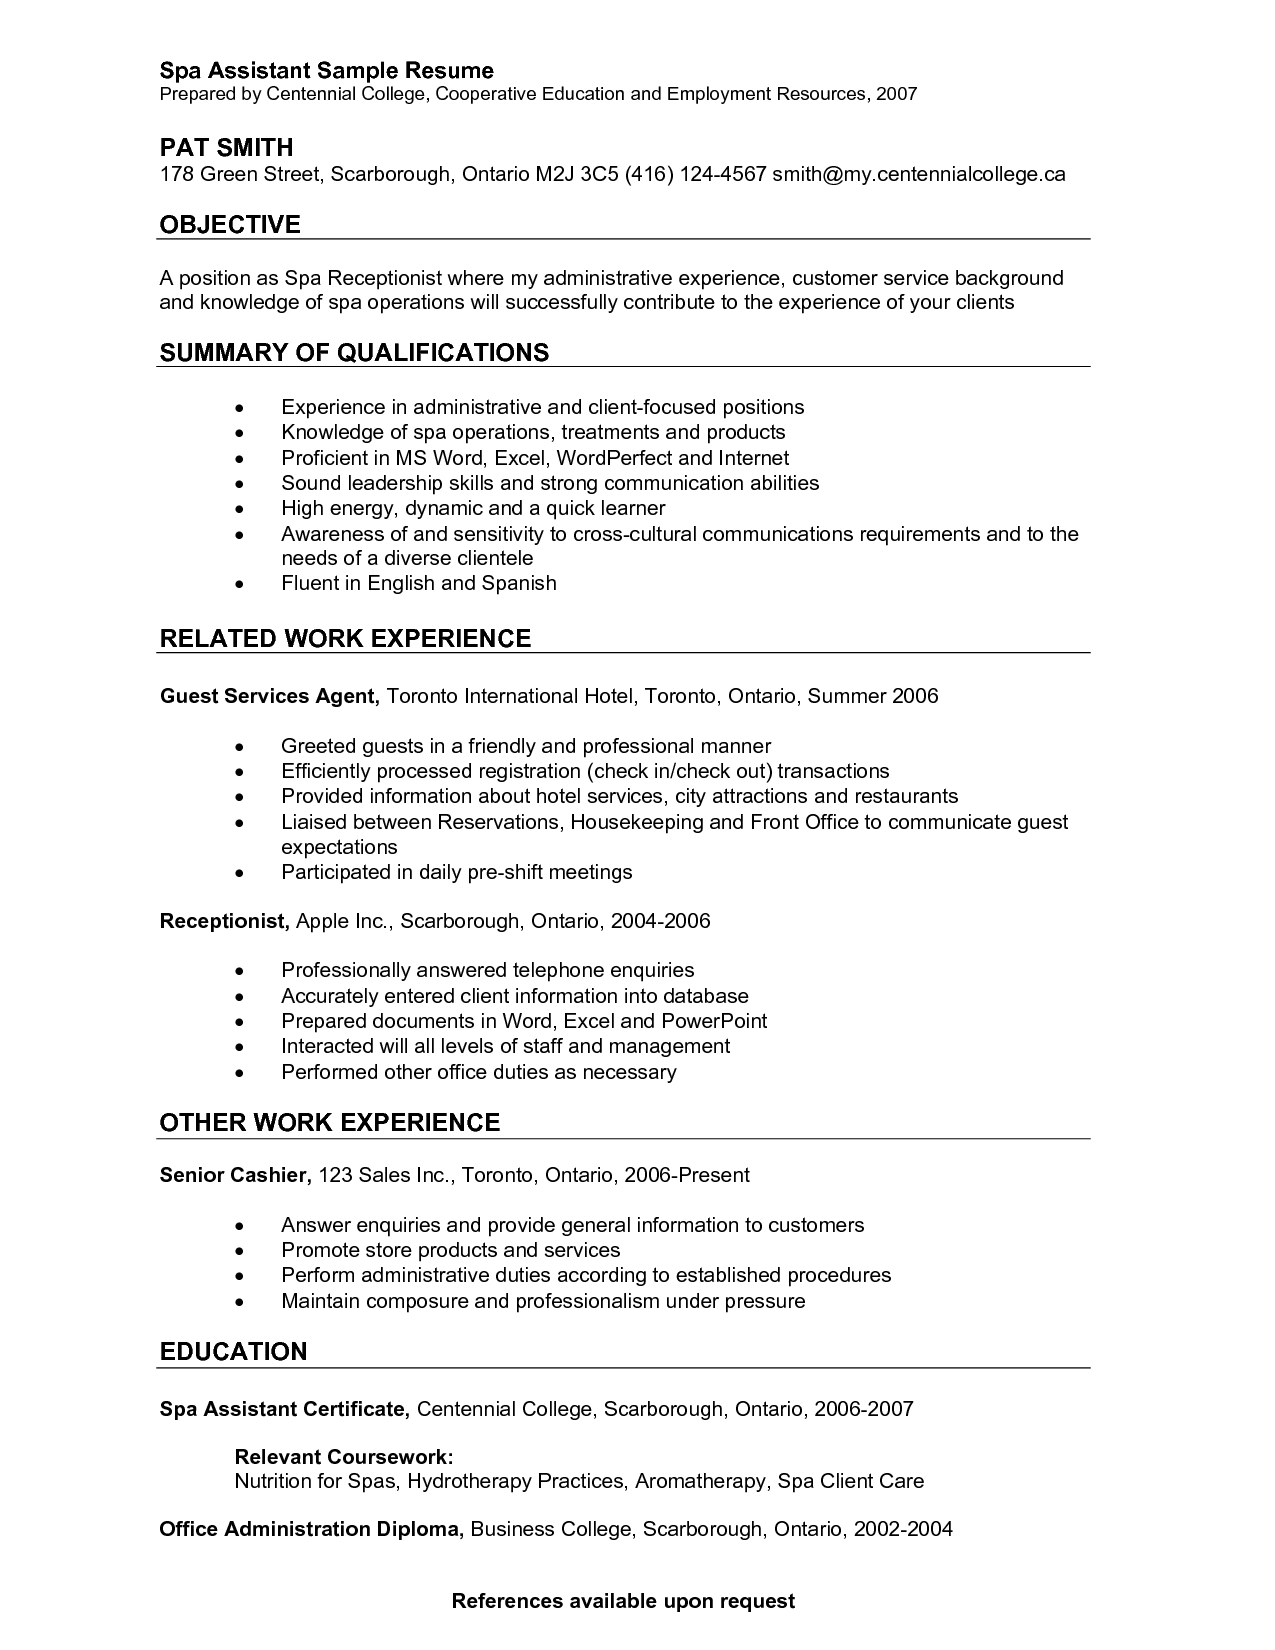 medical receptionist resume objective samples - Medical Receptionist Resume